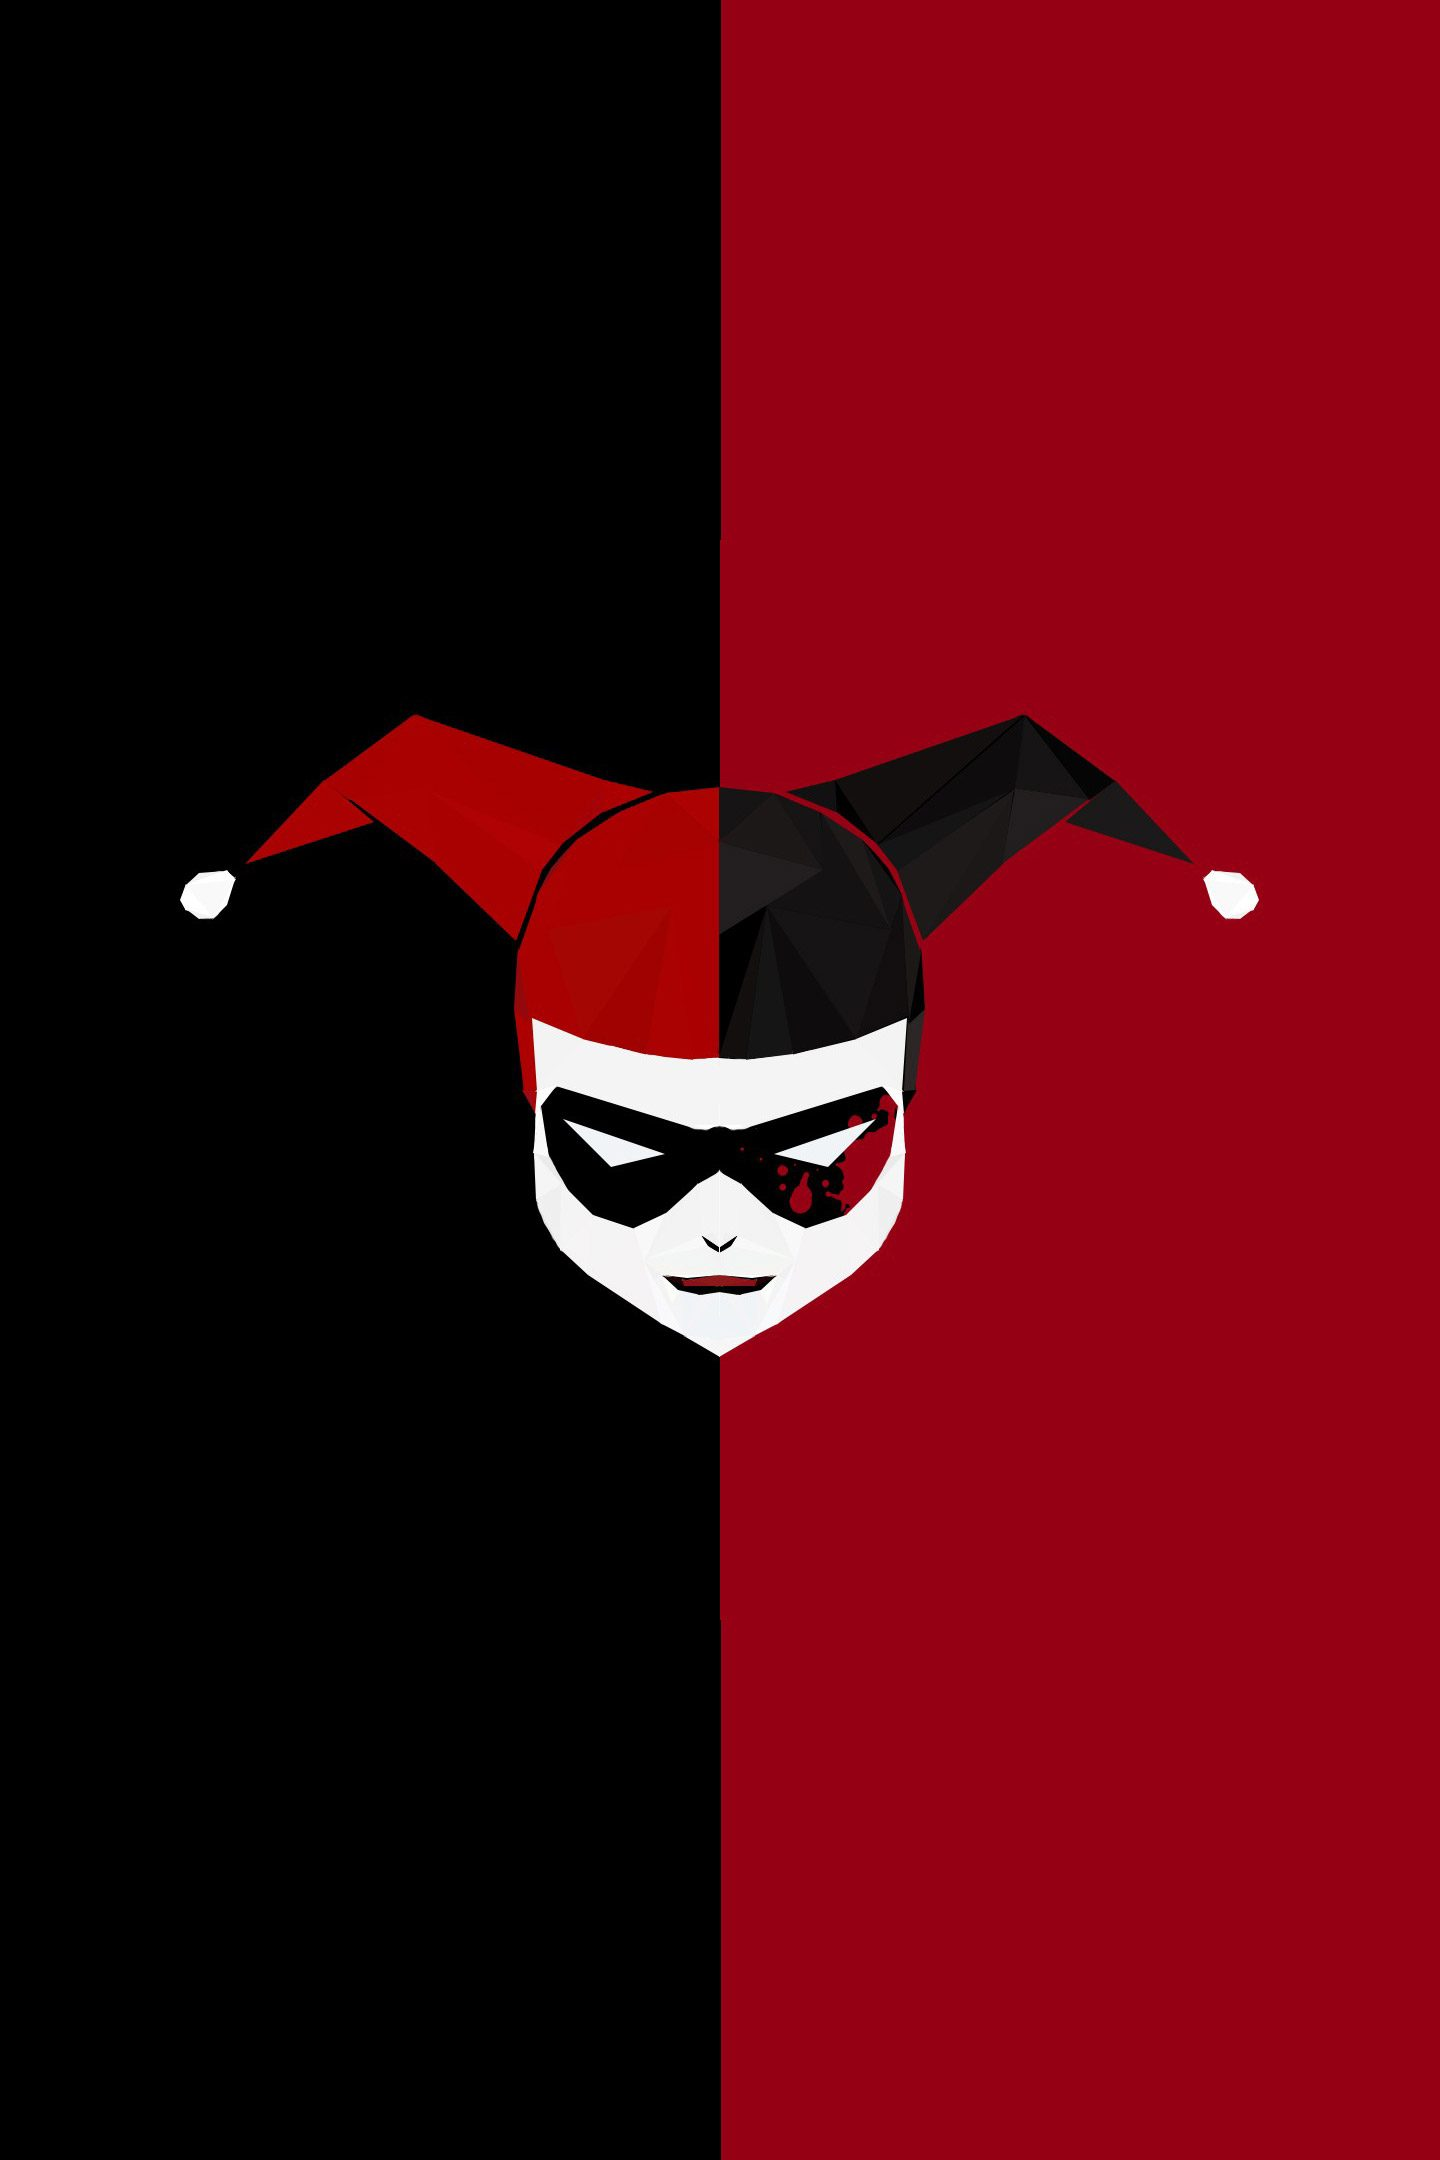 Minimal Harley Quinn Red Black 4k Wallpaper Best Wallpapers